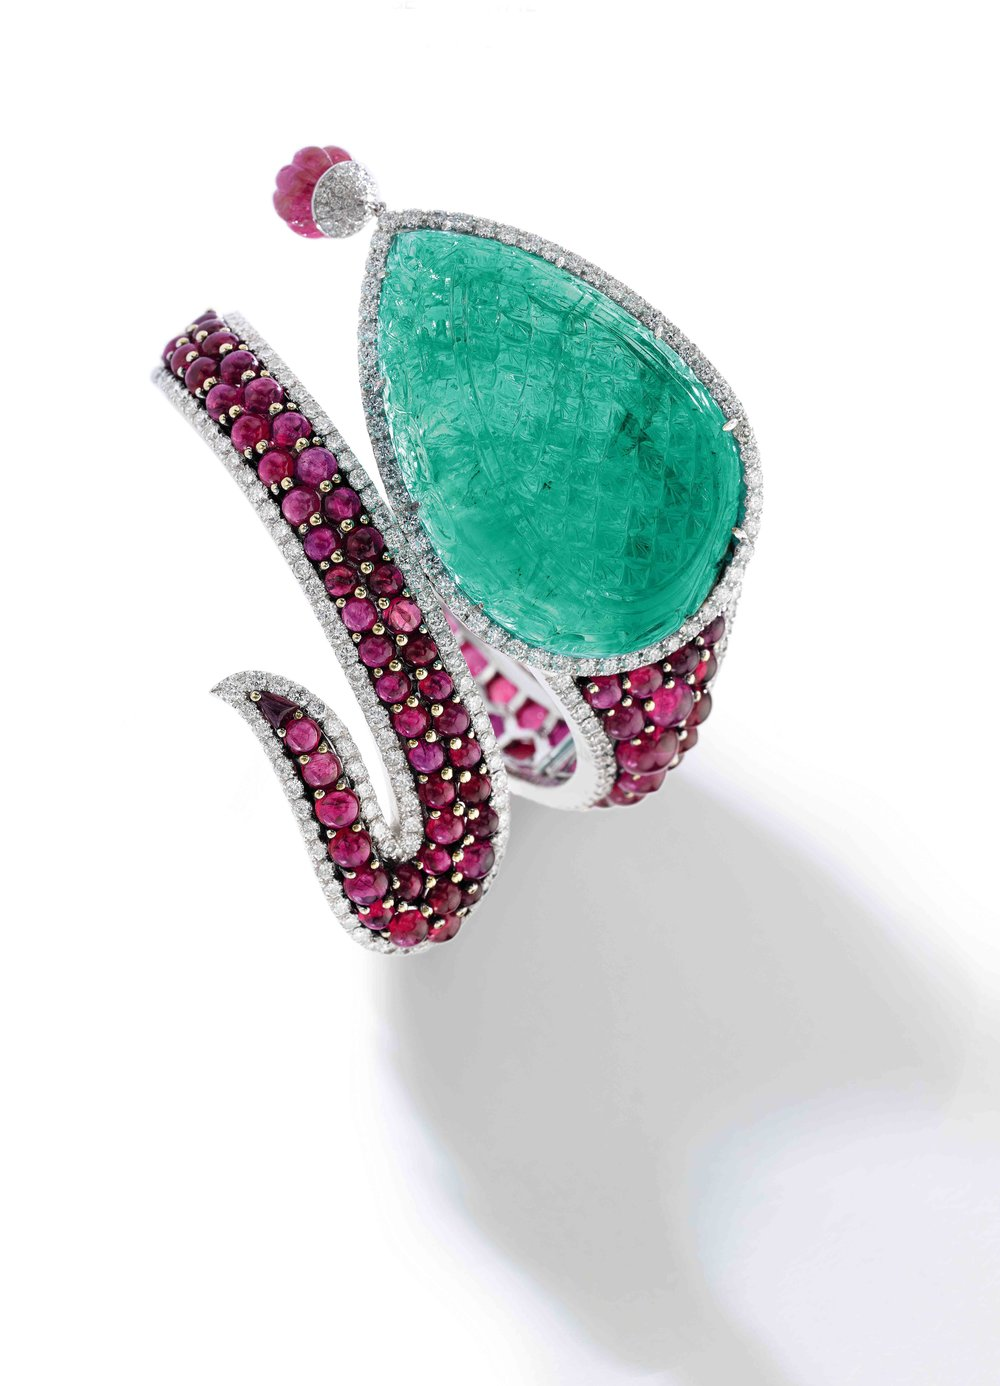 Emerald, ruby and diamond bracelet Featuring a drop-shaped carved emerald and pavé-set with cabochon rubies within a frame of brilliant-cut diamonds